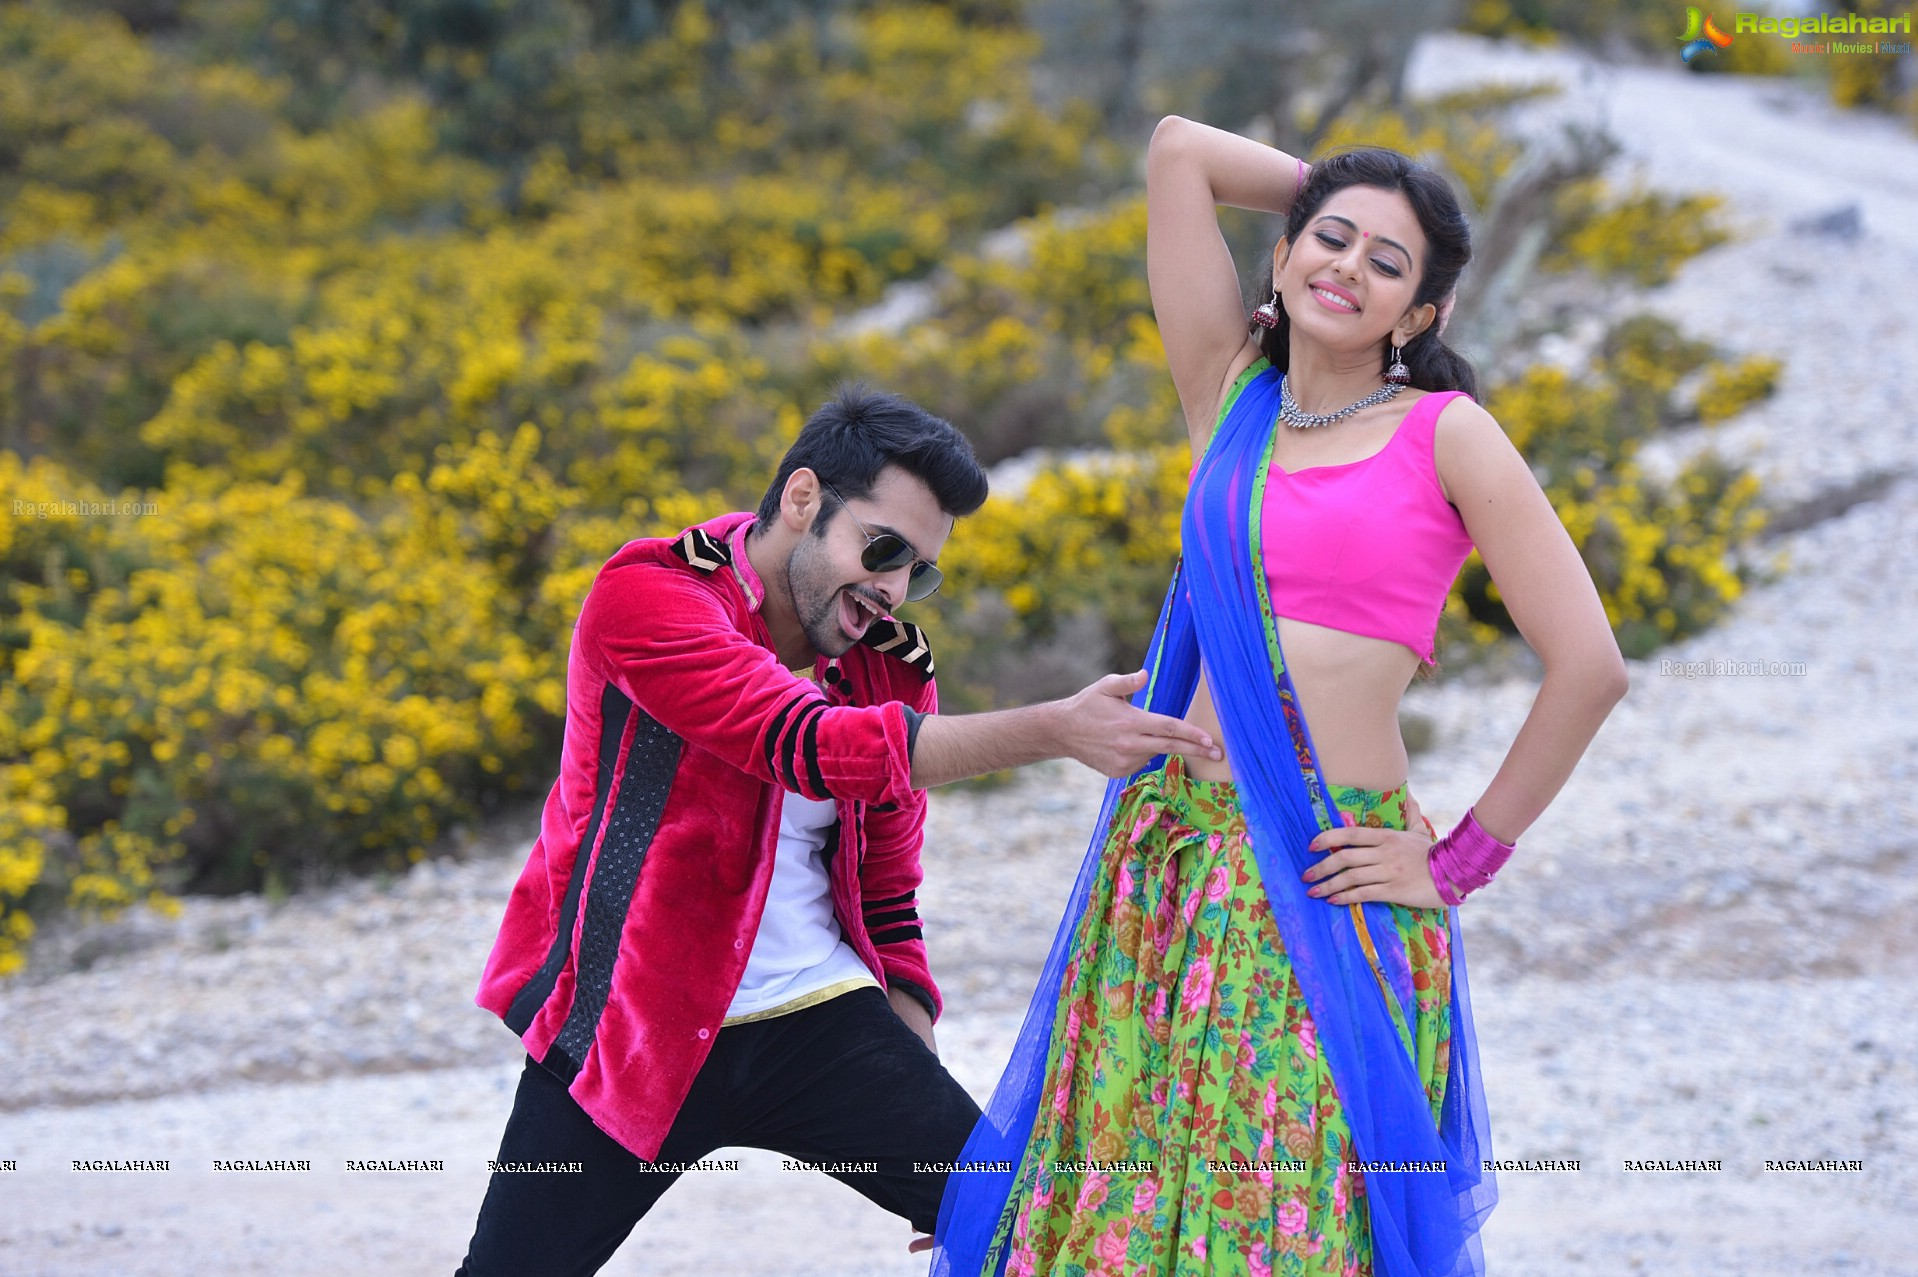 Pandaga Chesko in USA on May 28th by GIF